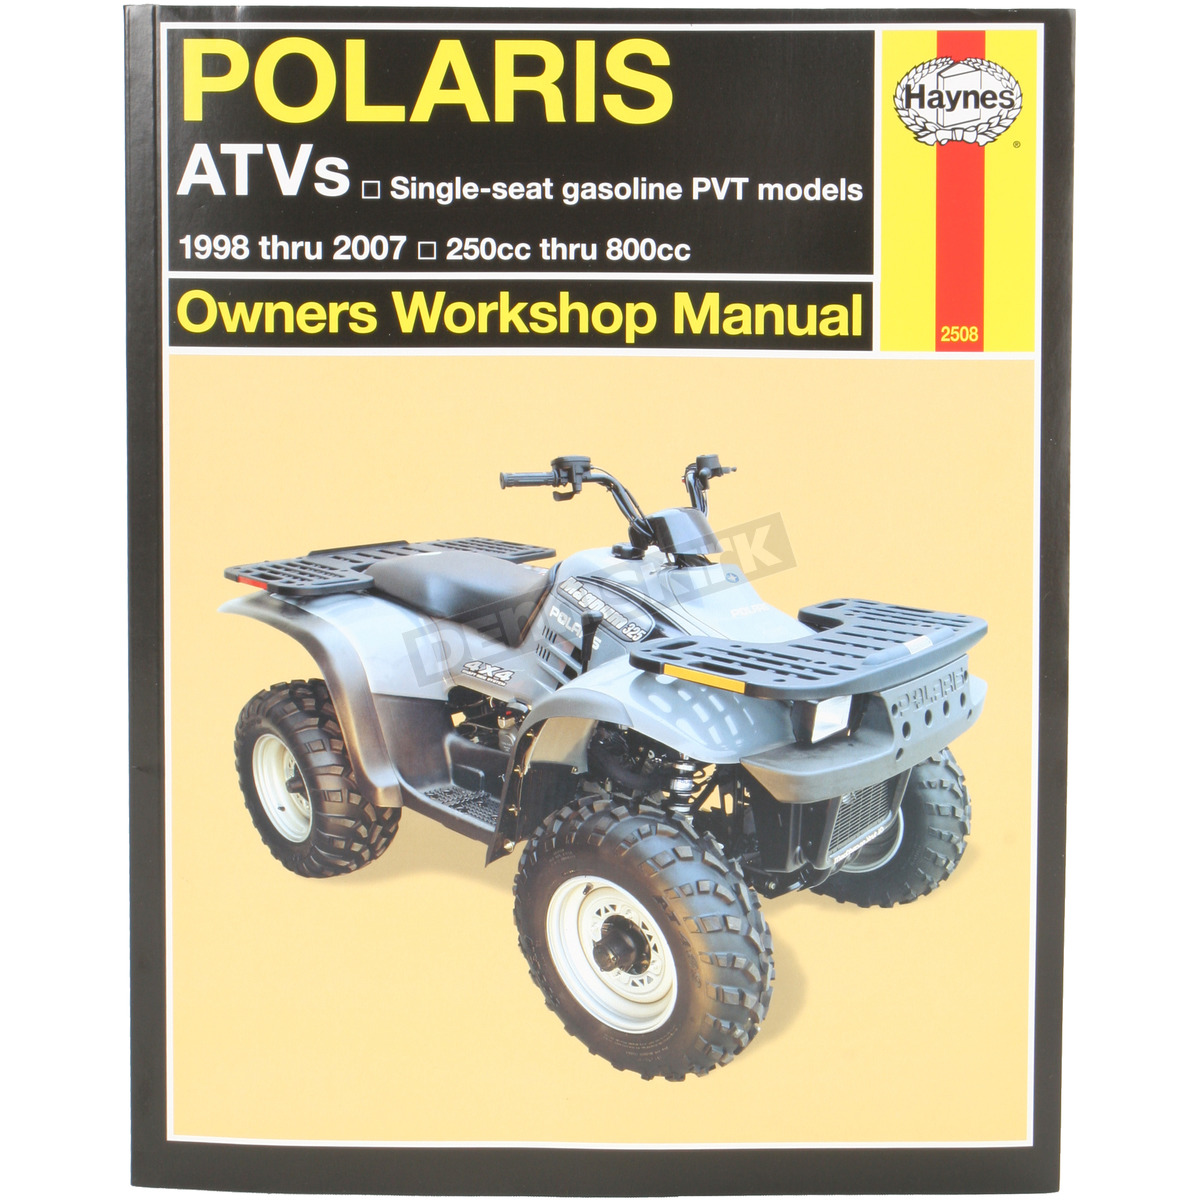 haynes polaris repair manual 2508 dennis kirk rh denniskirk com 2001 Polaris Sportsman 700 2001 Polaris Sportsman 700